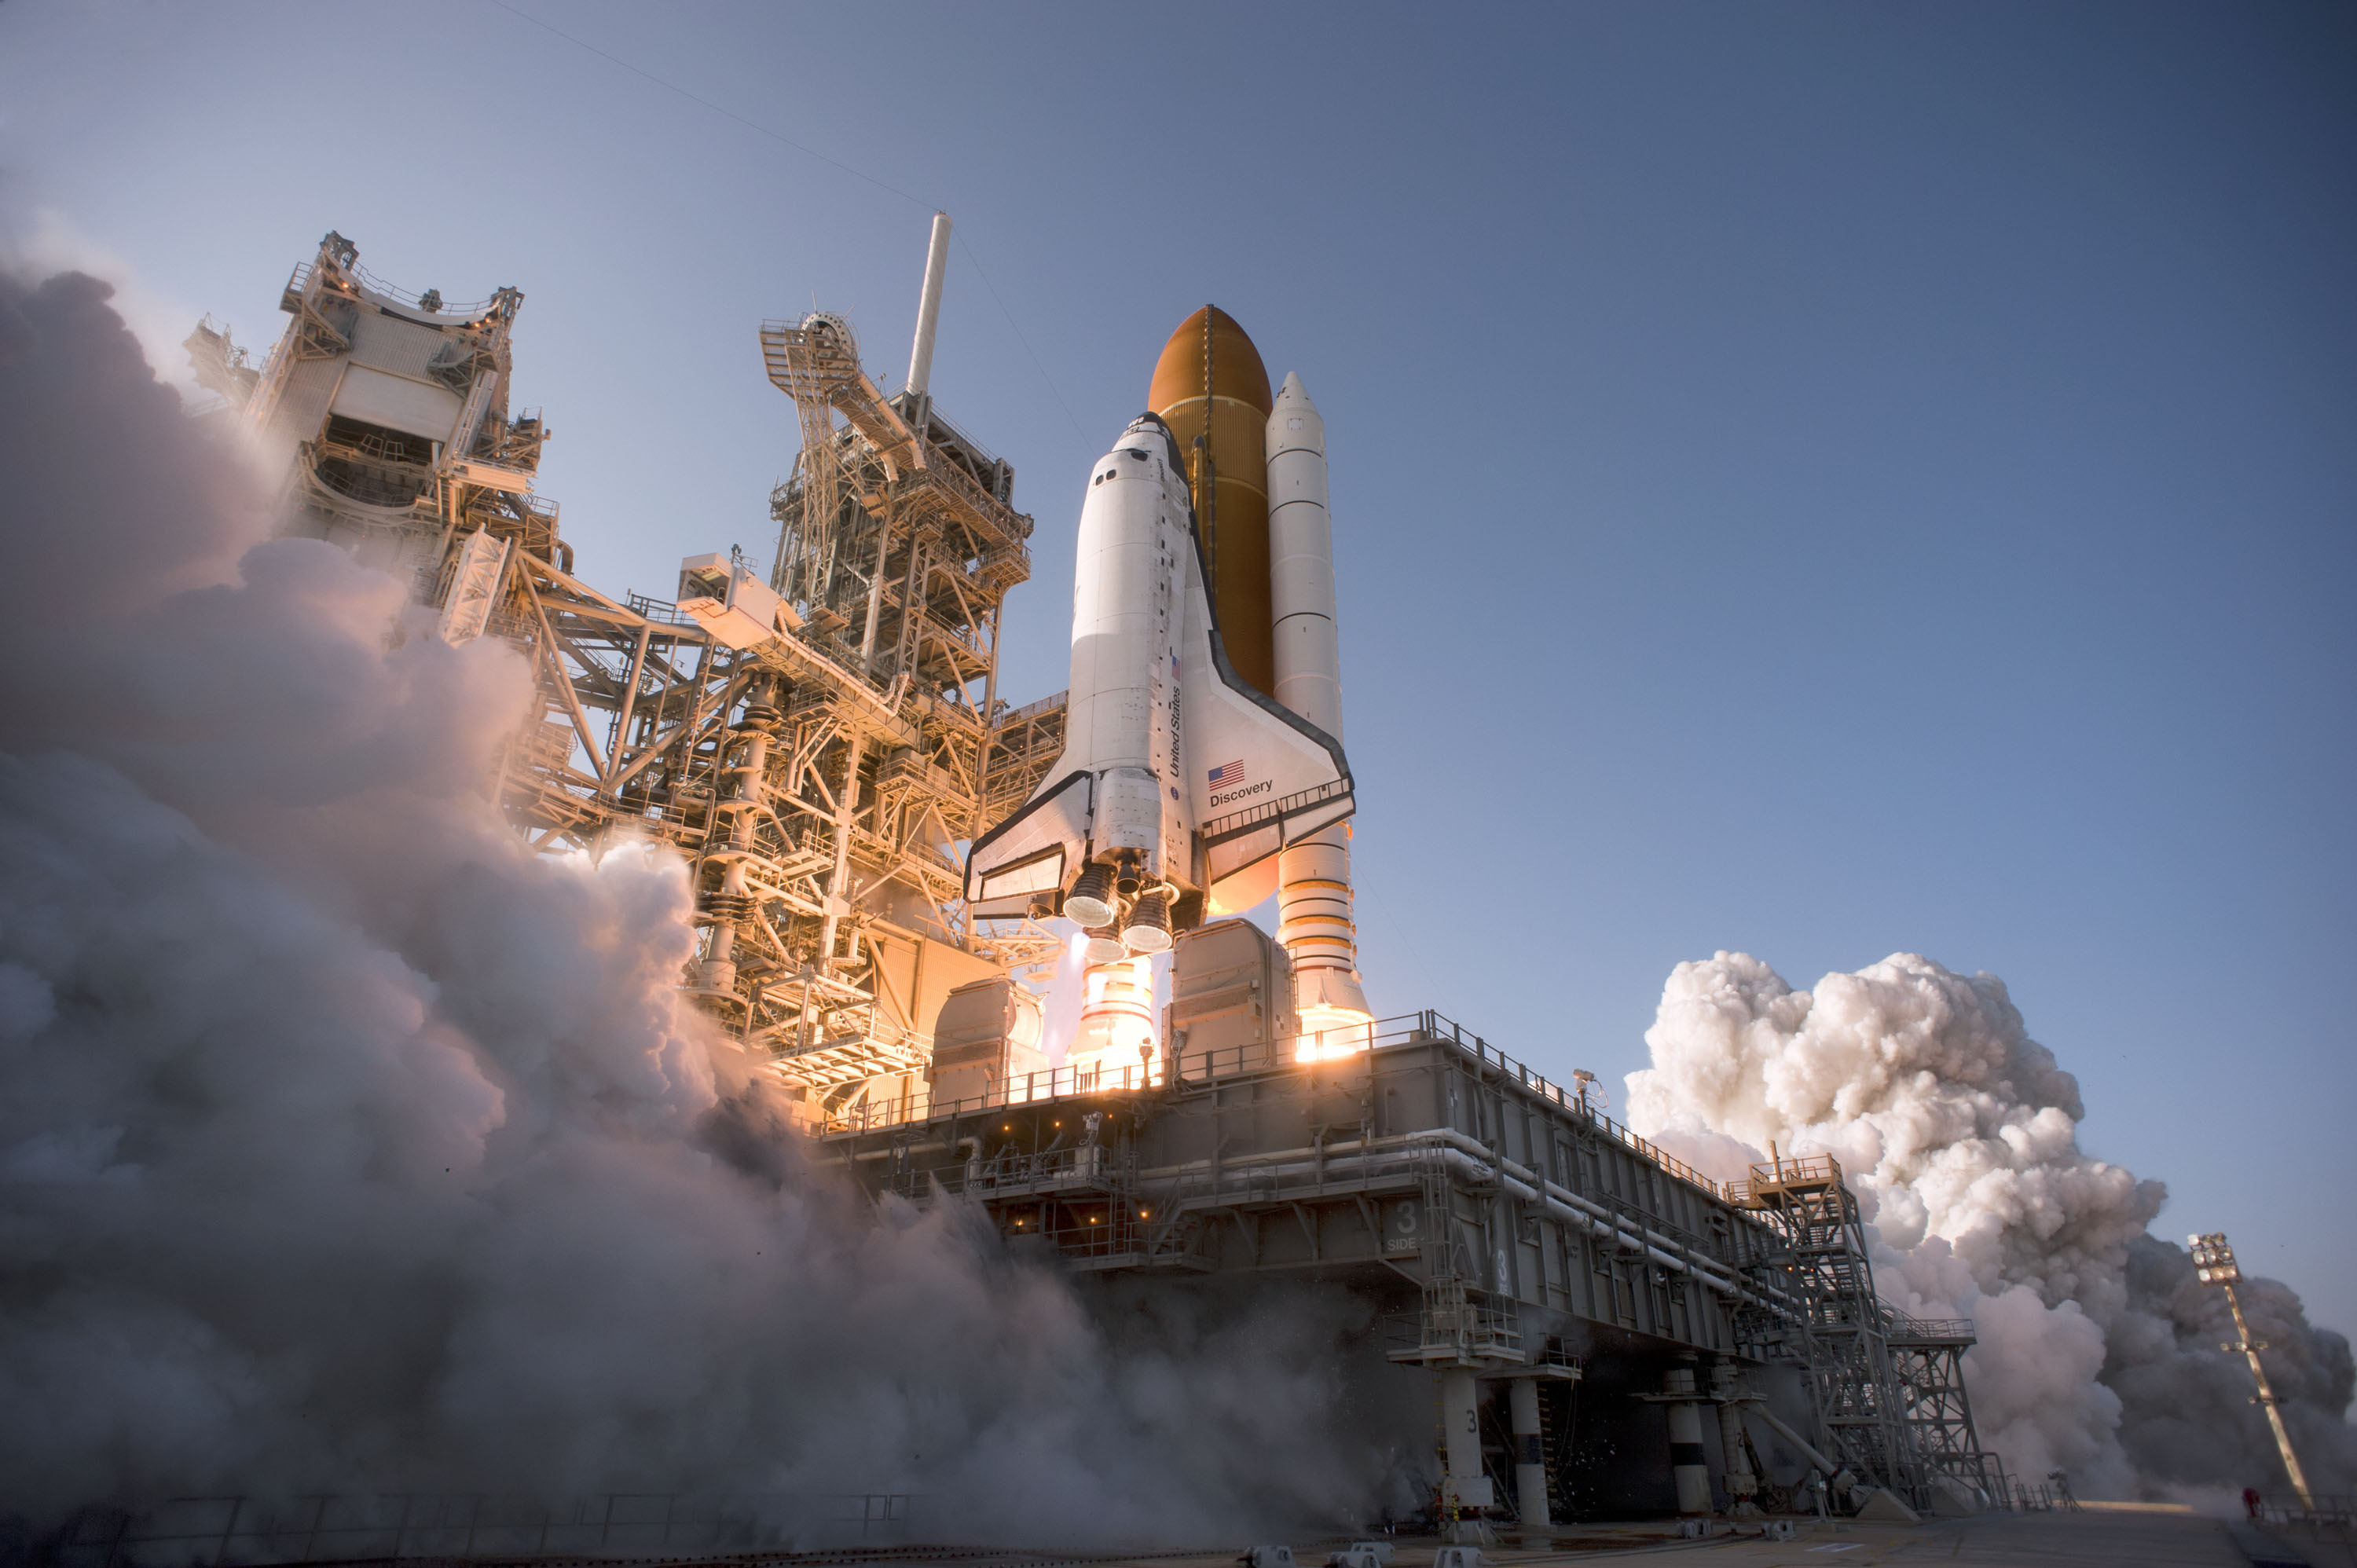 Total Cost of NASA's Space Shuttle Program: Nearly $200 Billion